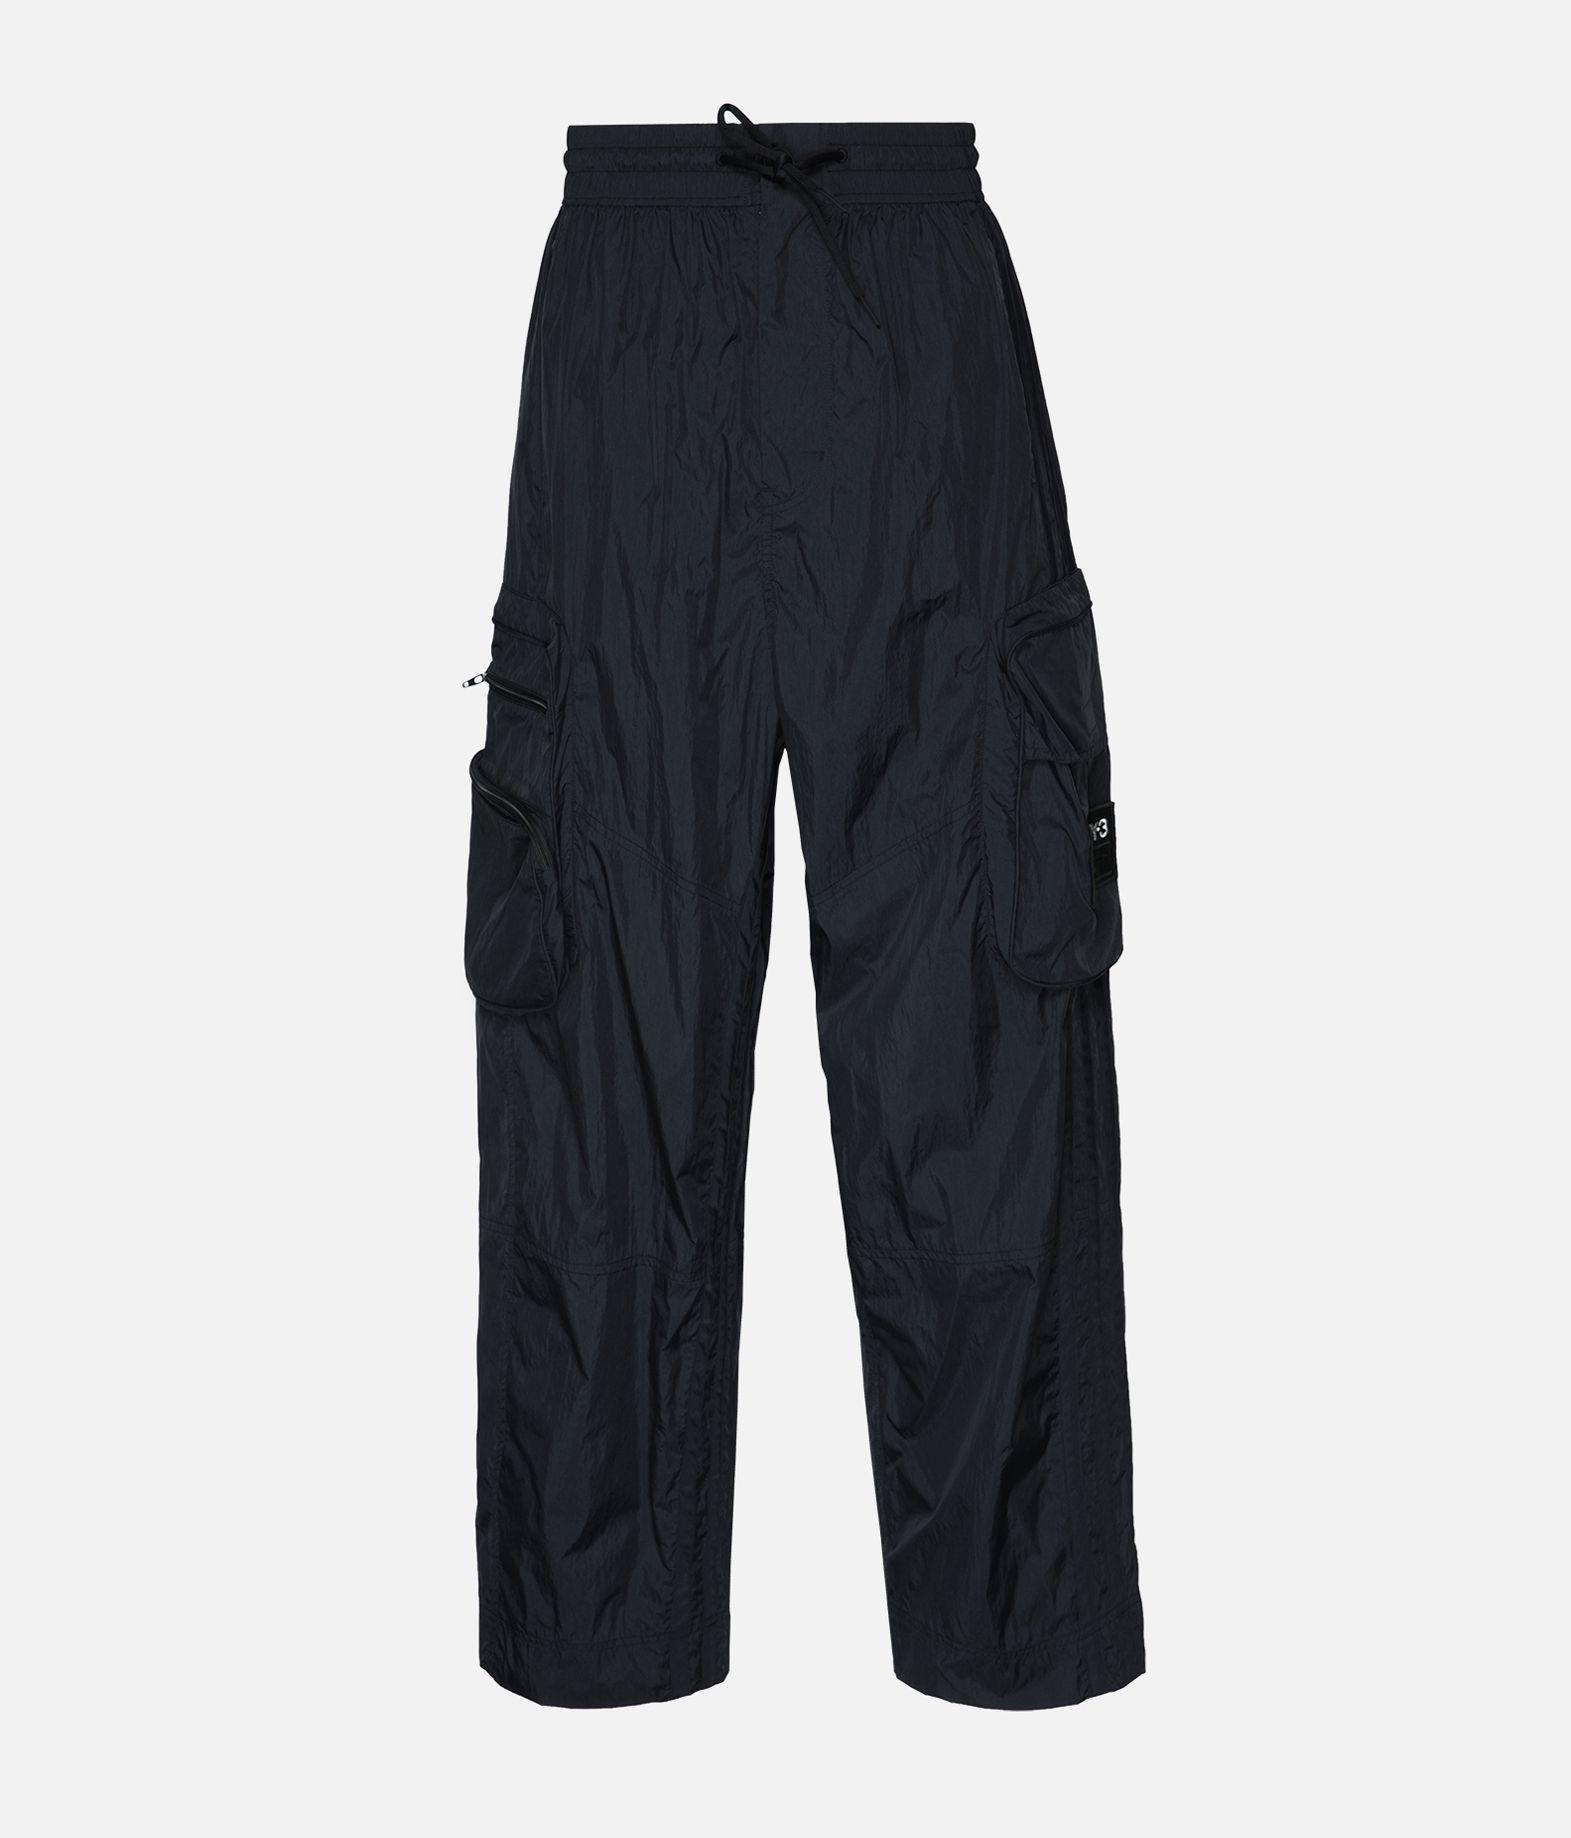 Y-3 Y-3 Shell Track Pants Track pant Woman f